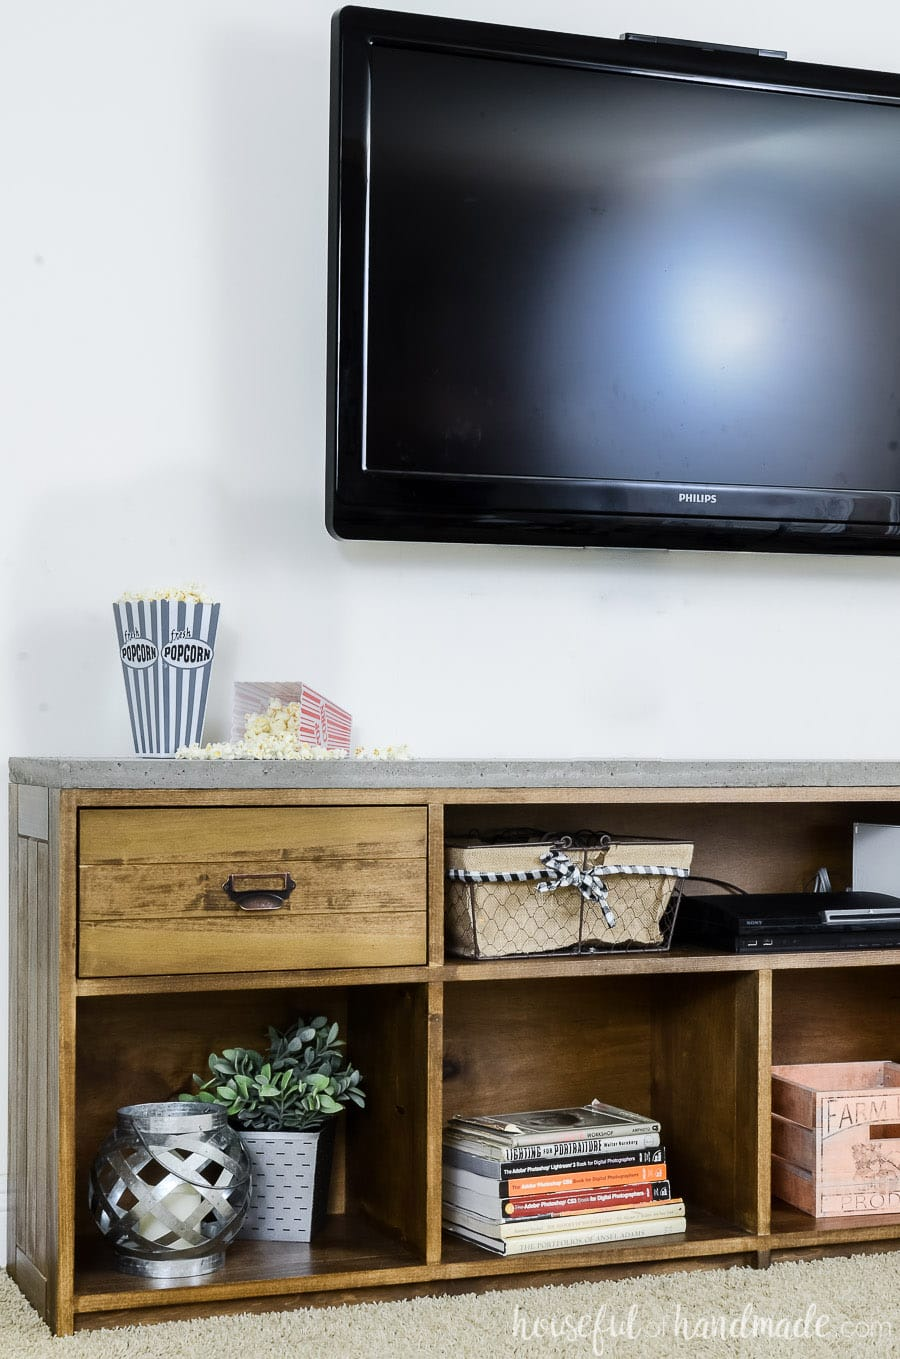 Glancing Televison Mounted On Wall Above A Warm Brown Rustic Tv Stand Withconcrete Rustic Tv Stand Handmade Rustic Tv Stands Diy Rustic Tv Stands Target Concrete Houseful houzz 01 Rustic Tv Stands